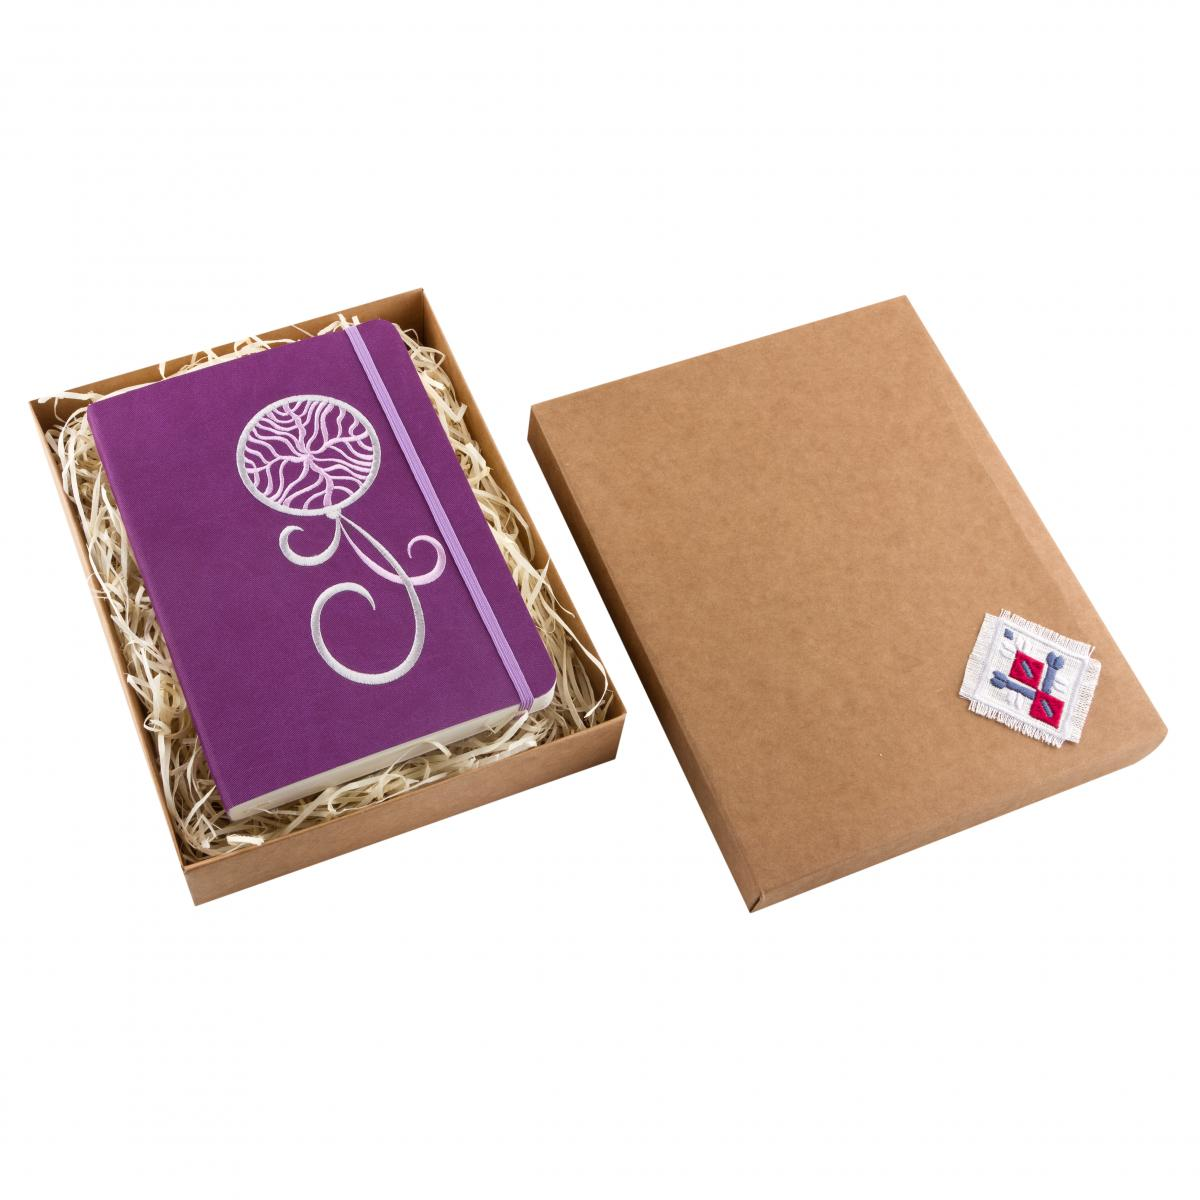 Eco-leather notebook with embroidered Dream catcher, violet. Photo №3. | Narodnyi dim Ukraine